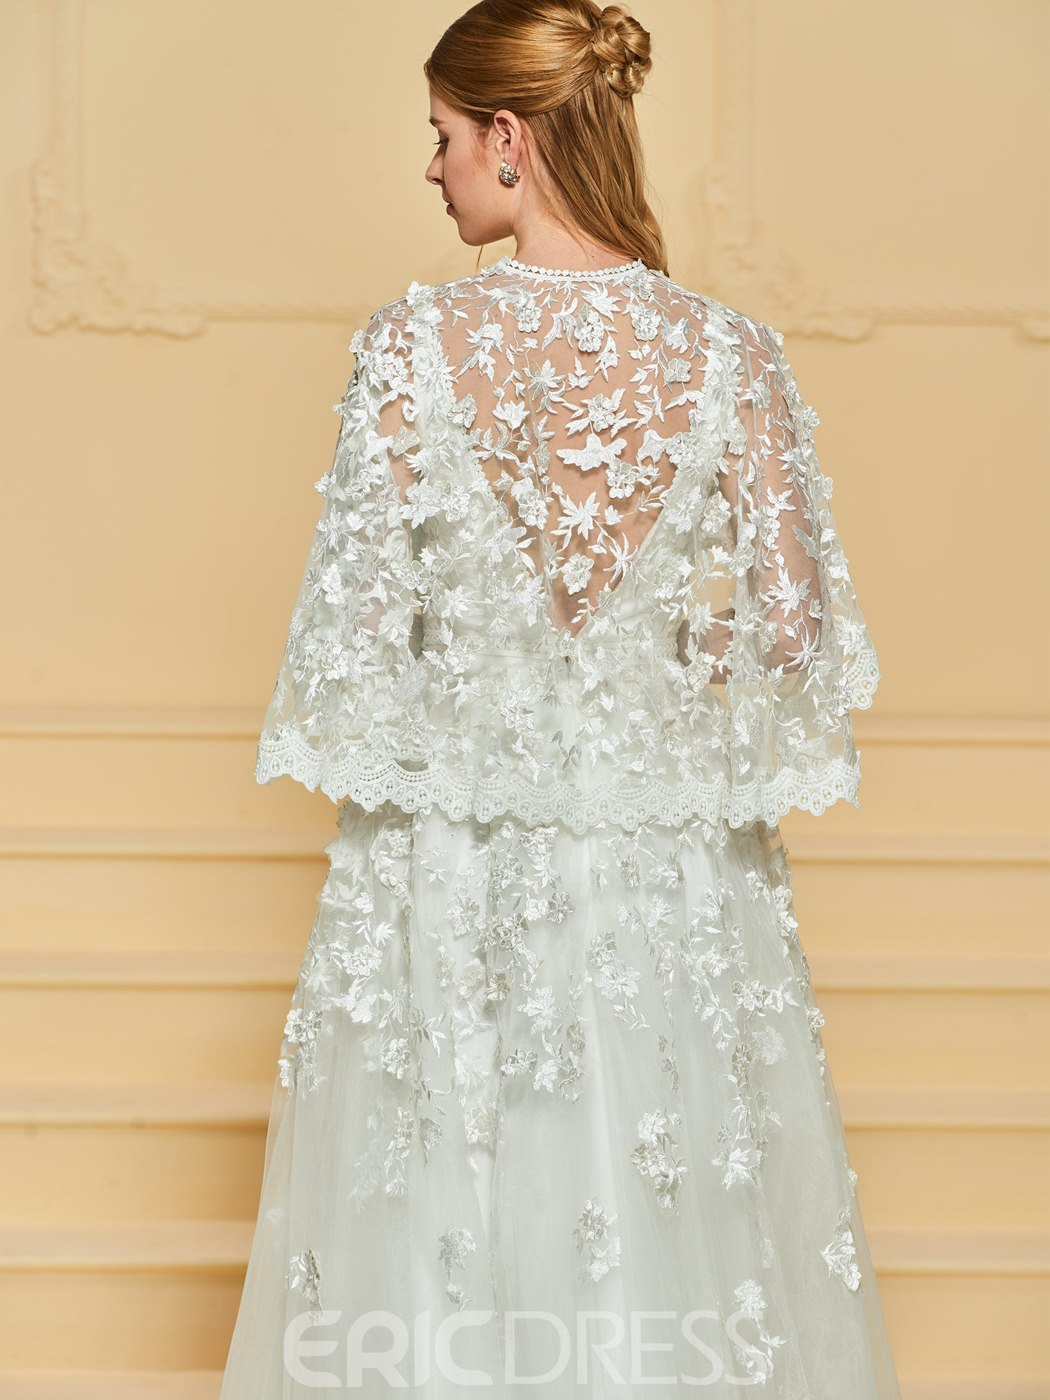 Ericdress Lace Appliques Wedding Dress with Cape